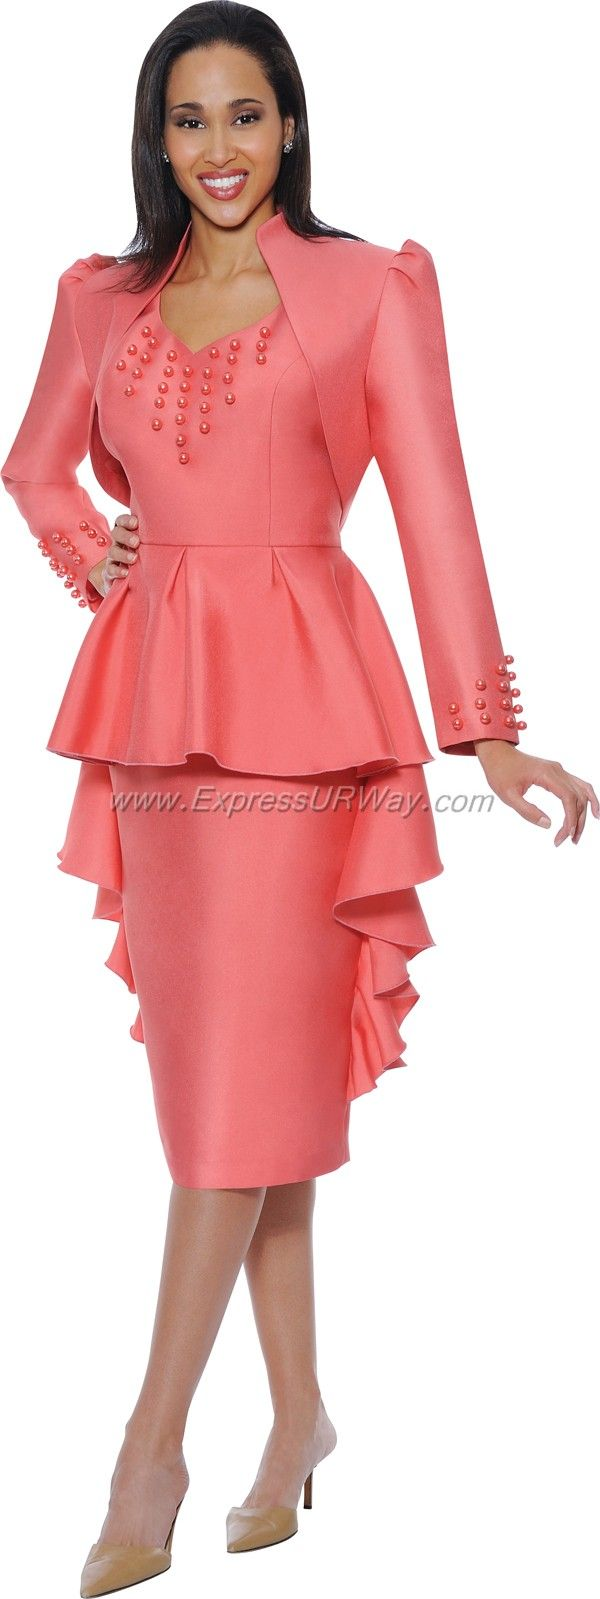 Luxury Susanna 2015 Church Suits Womens Church Suits Church Dresses Church